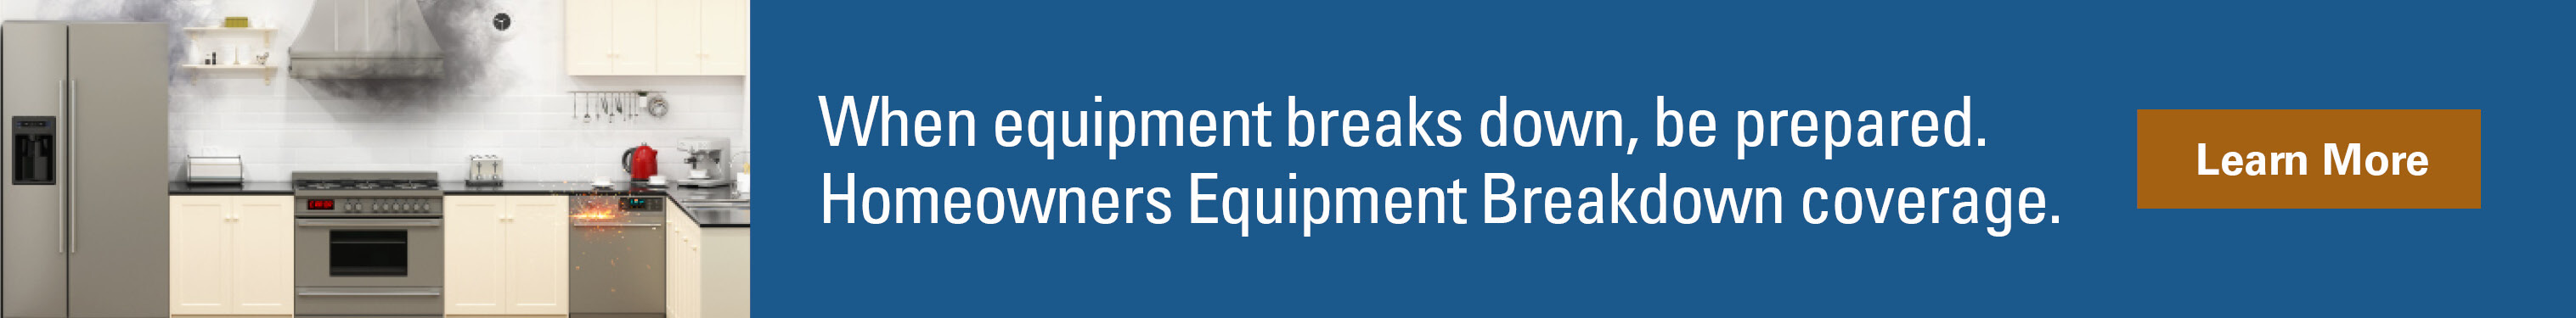 Equipment Breakdown Coverage Graphic